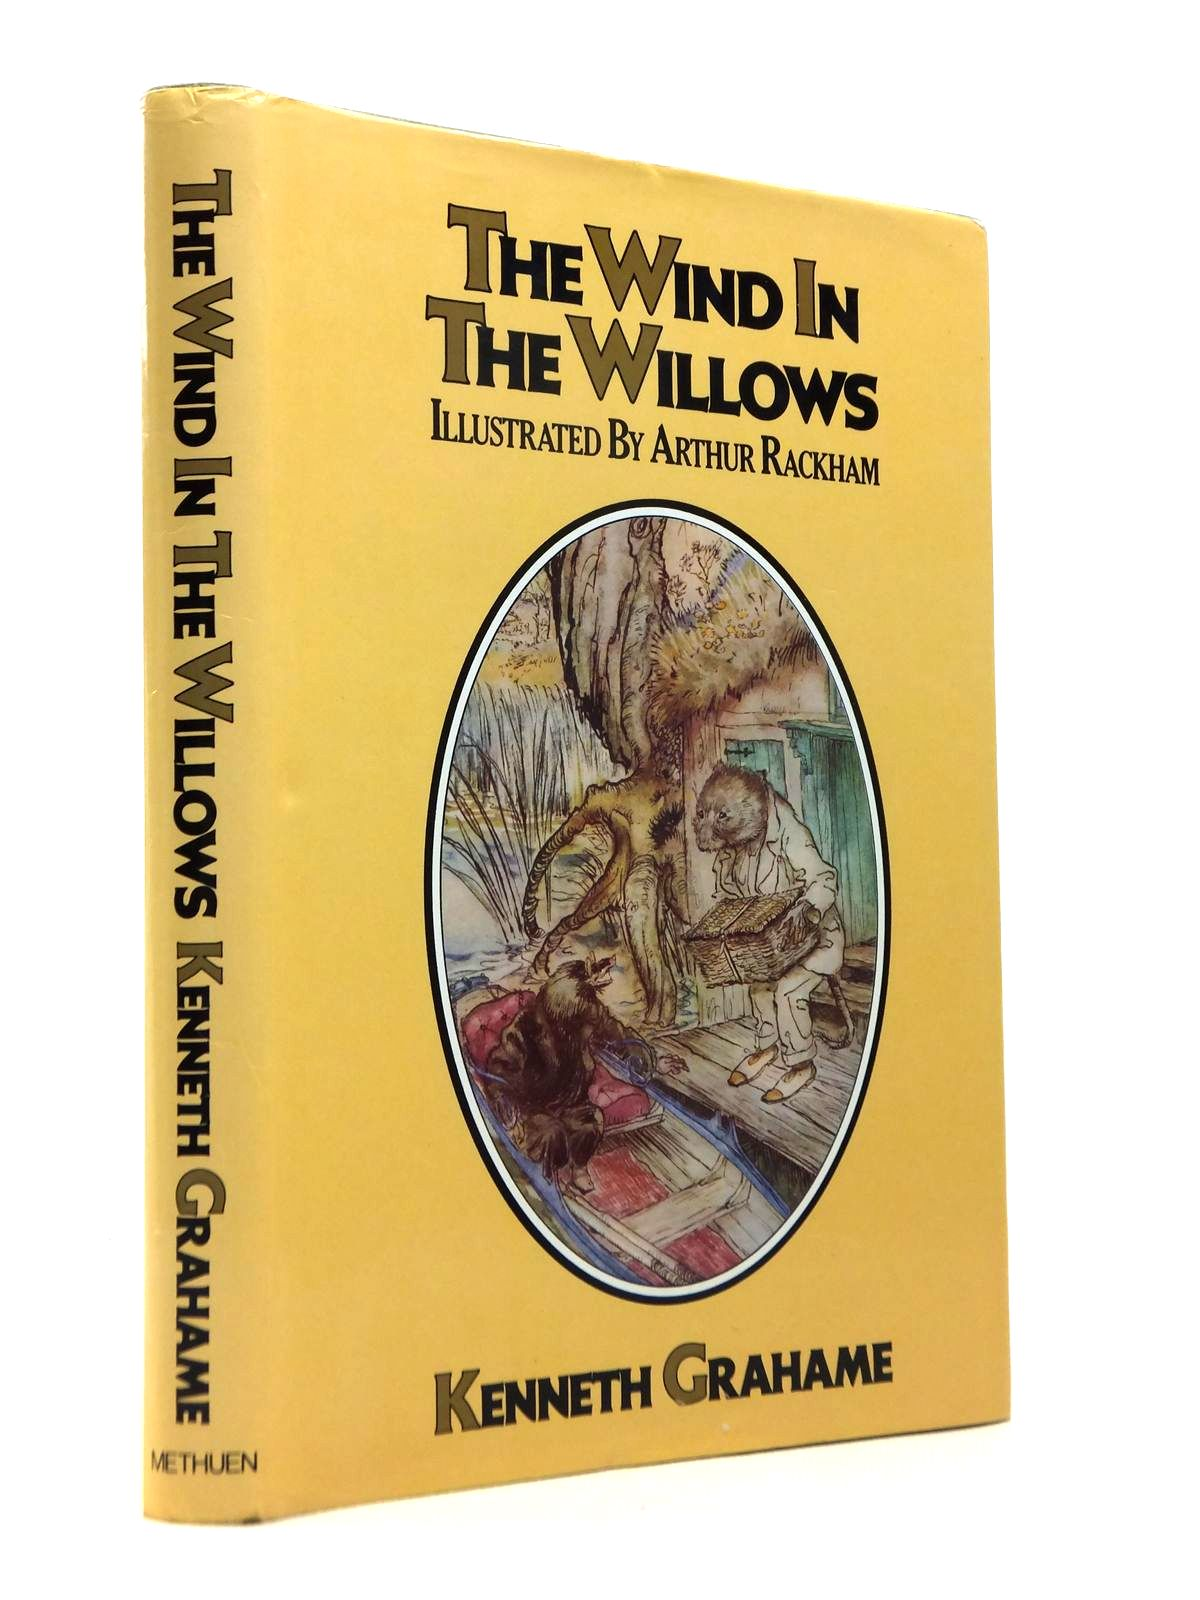 Photo of THE WIND IN THE WILLOWS written by Grahame, Kenneth illustrated by Rackham, Arthur published by Methuen Children's Books (STOCK CODE: 1812288)  for sale by Stella & Rose's Books